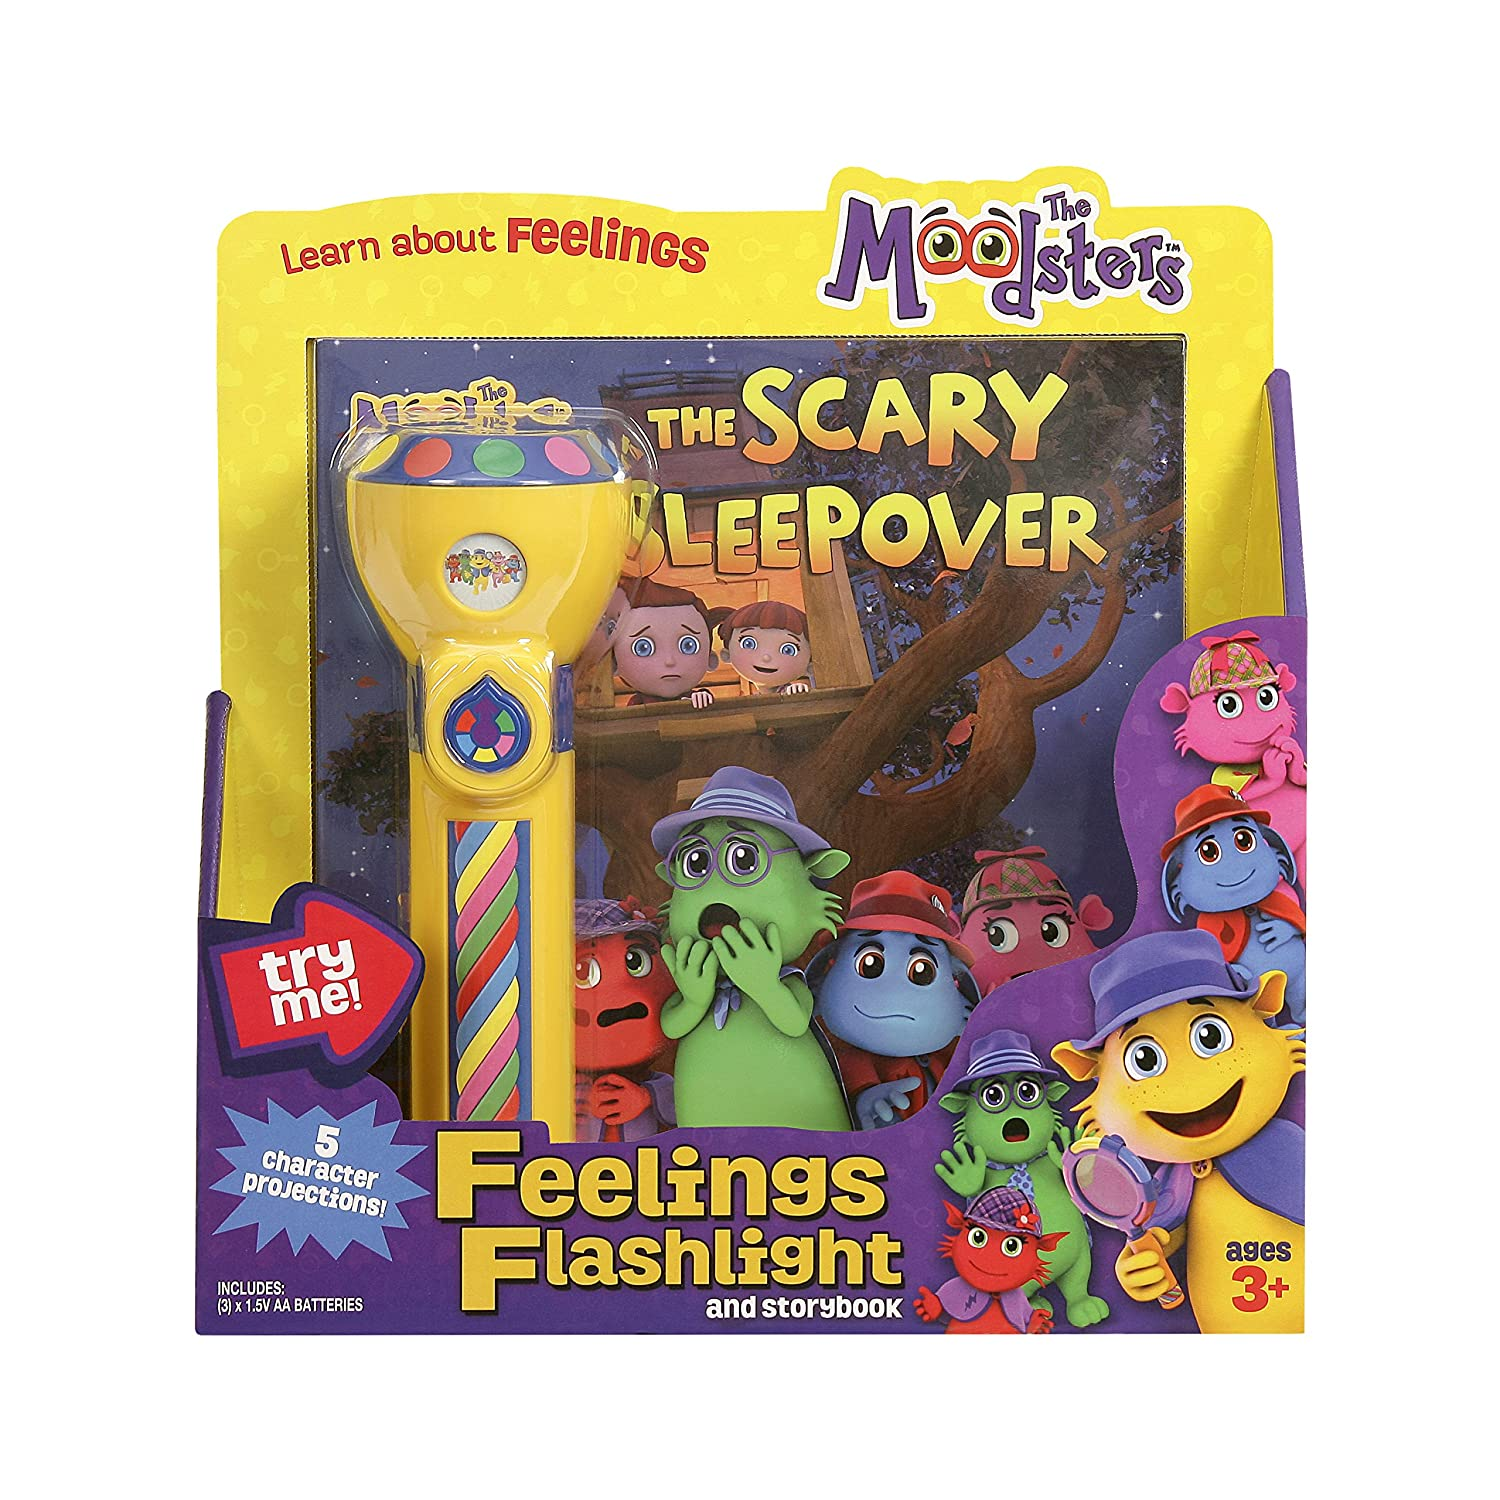 Amazon Moodsters Feelings Flashlight and Storybook Toys & Games